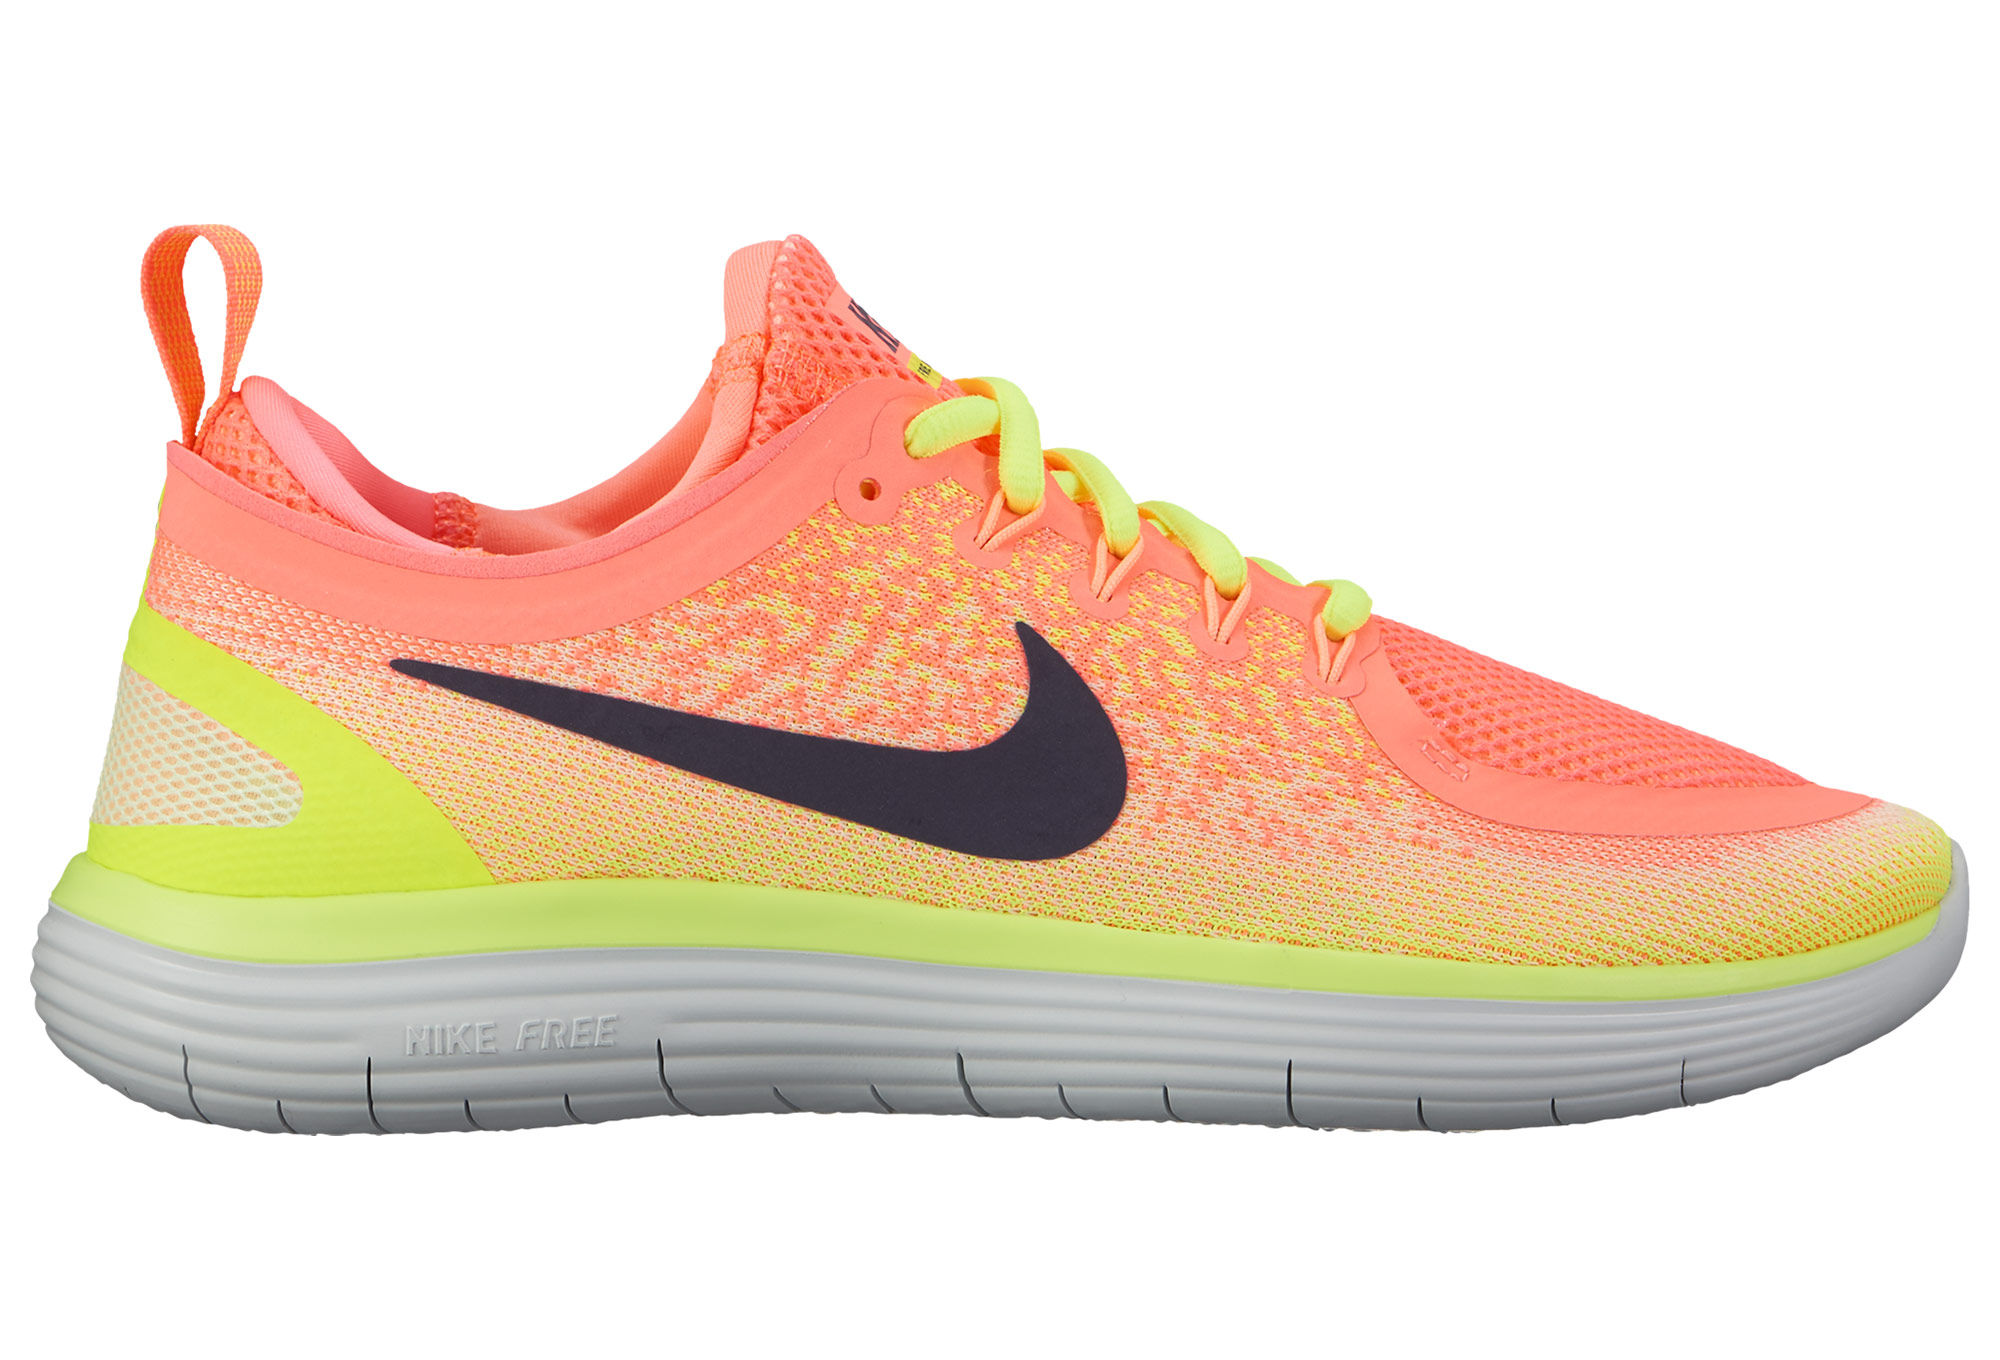 super popular dbab1 a3ccb Chaussures de Running Femme Nike FREE RUN DISTANCE 2 Rose   Jaune